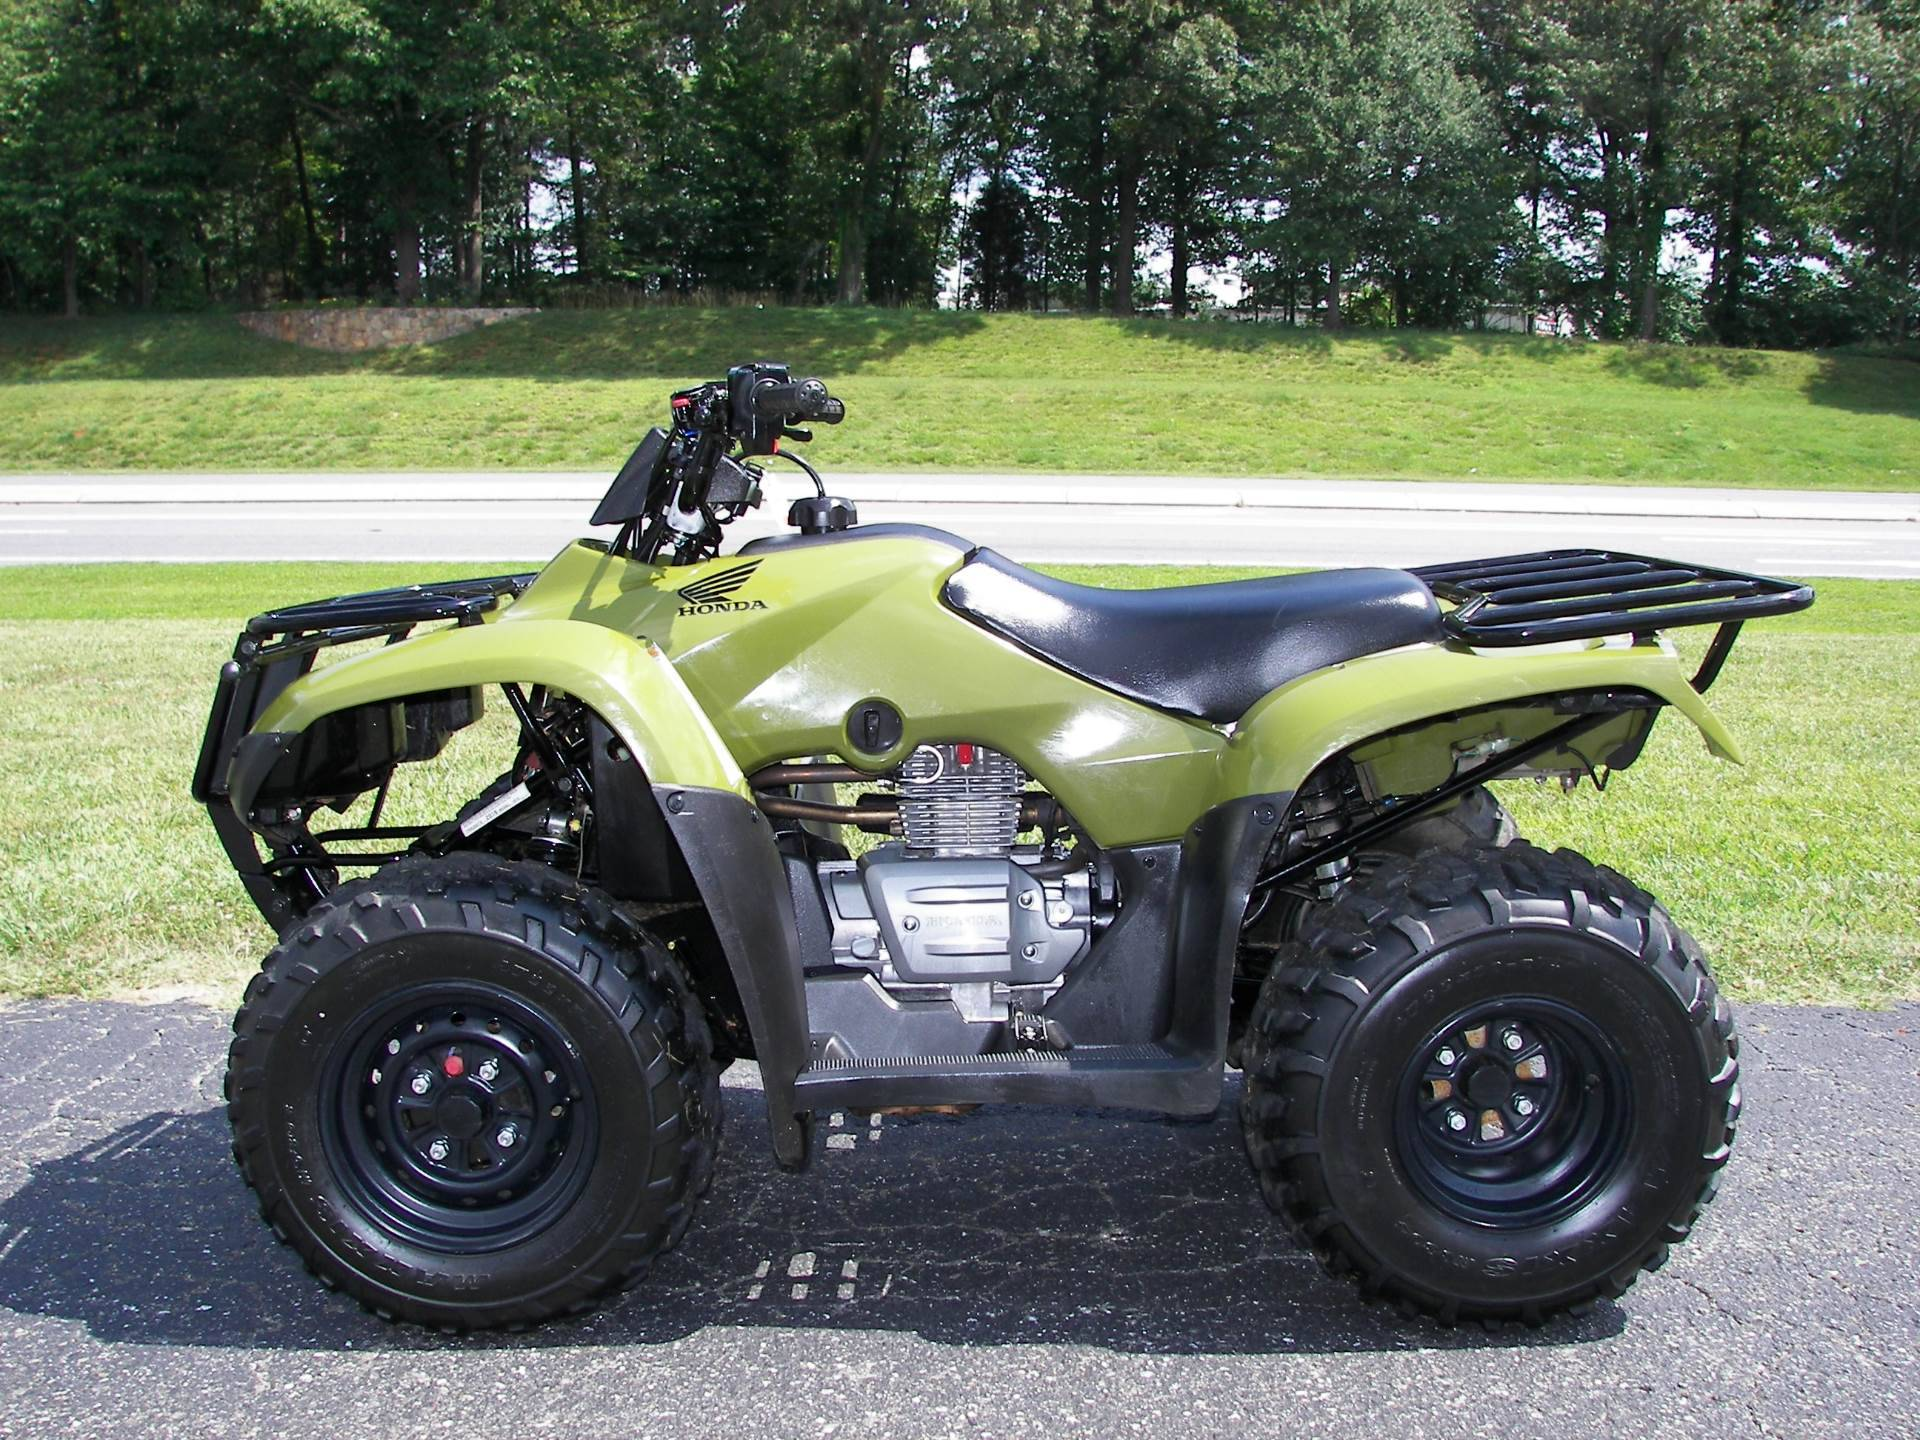 2017 Honda FourTrax Recon ES Green (TRX250TE) in Lapeer, Michigan - Photo 1